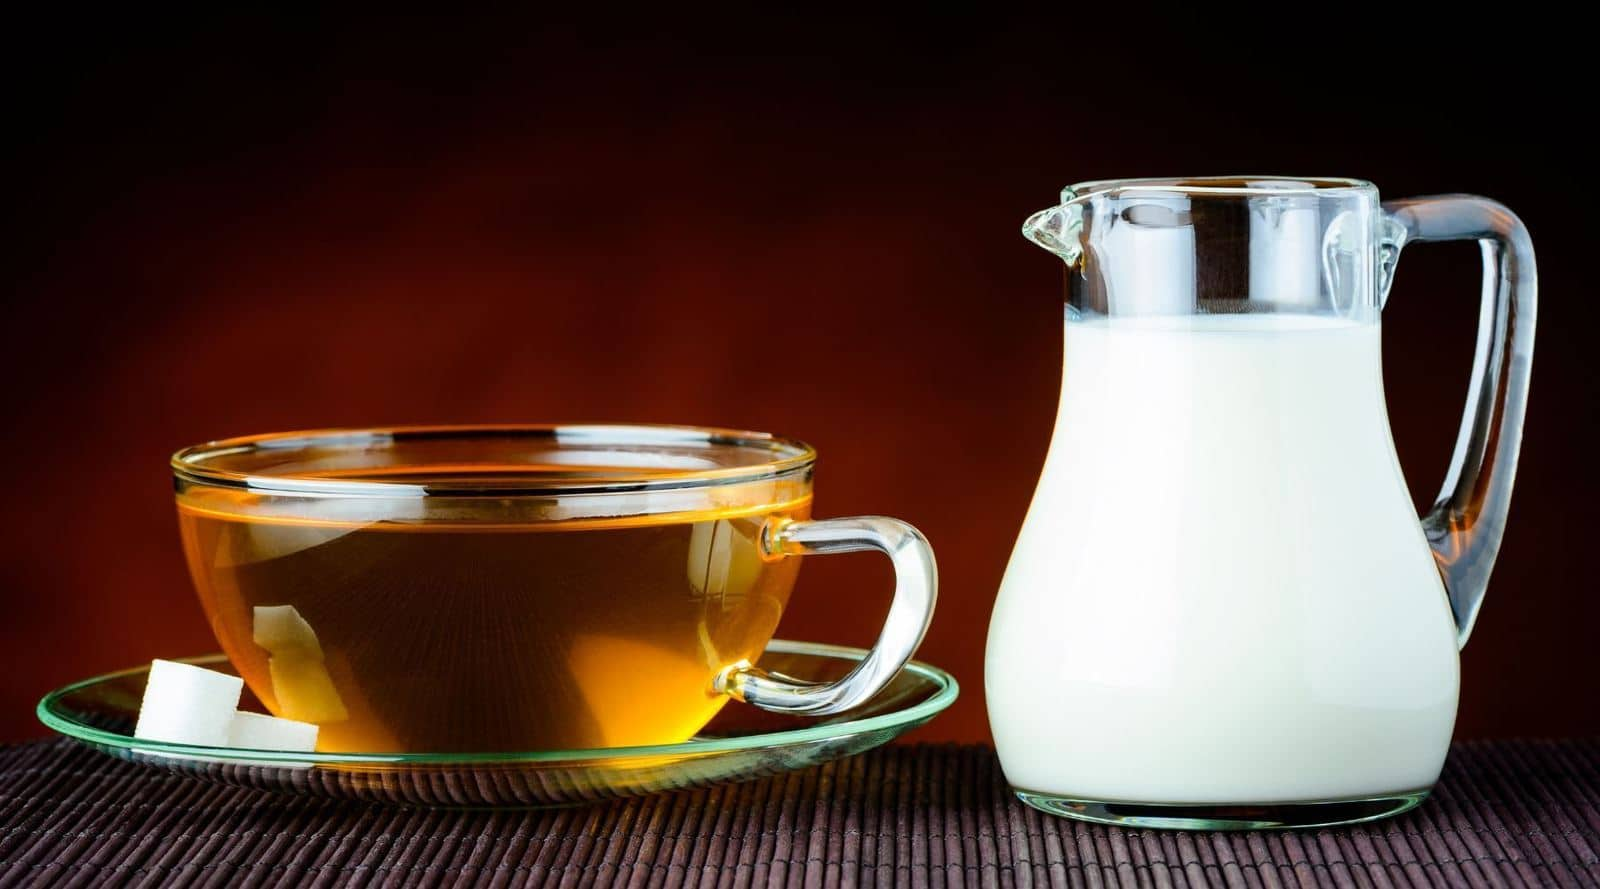 what kind of milk is better for tea?